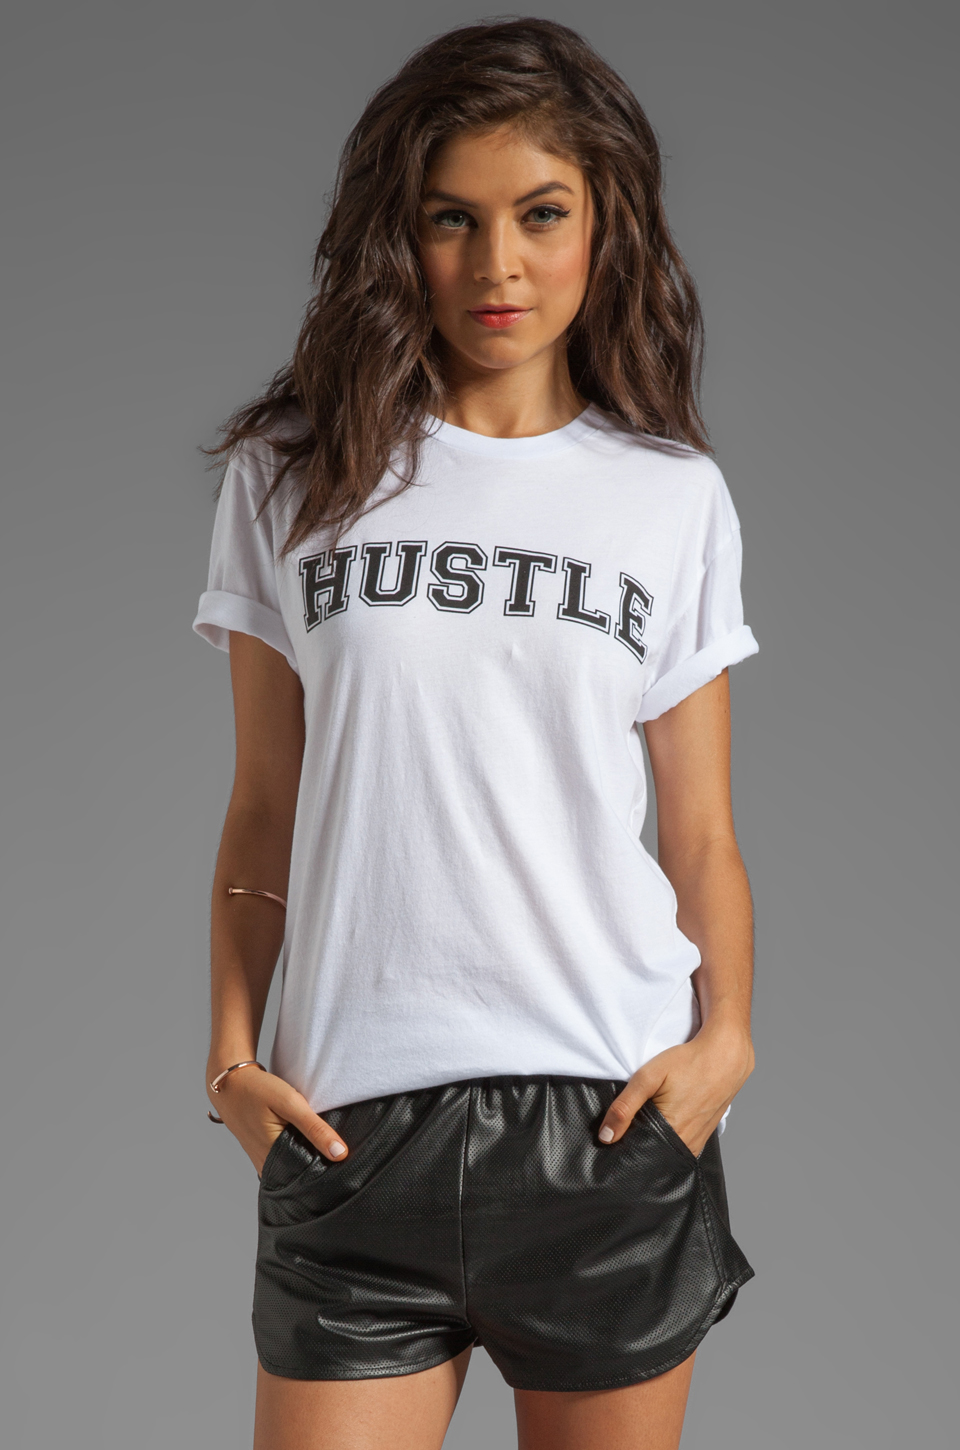 Lovers + Friends Lovers + Friends Hustle Graphic Tee in White